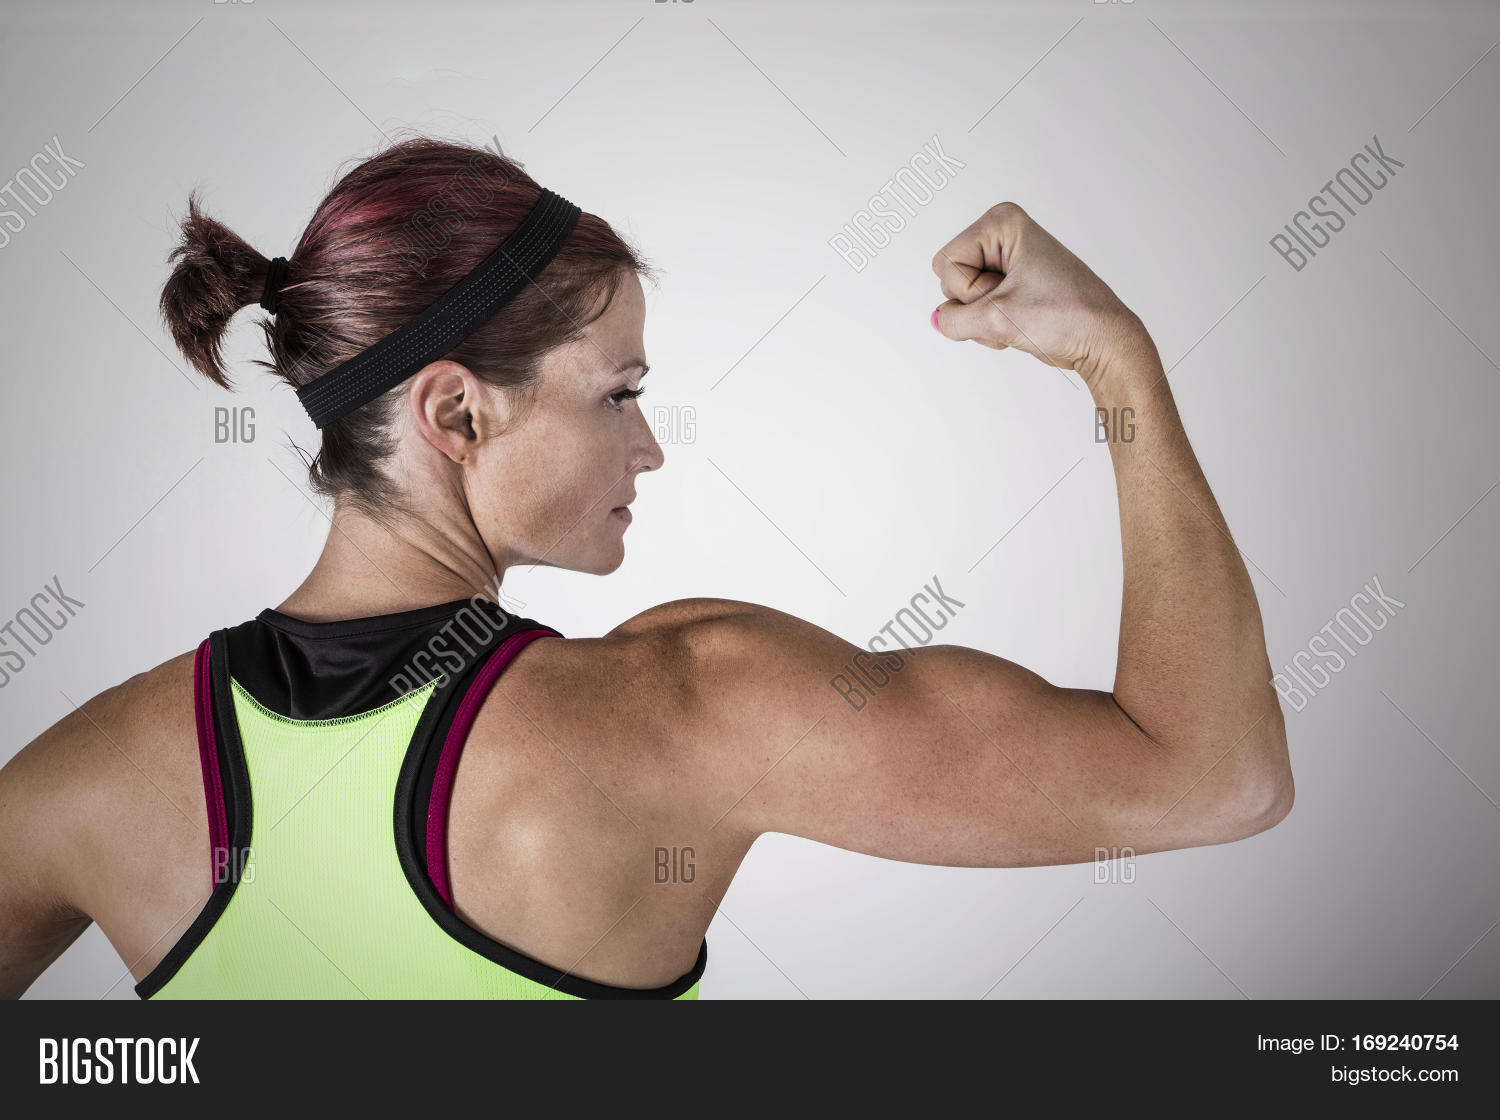 Female body ripped MEET THE